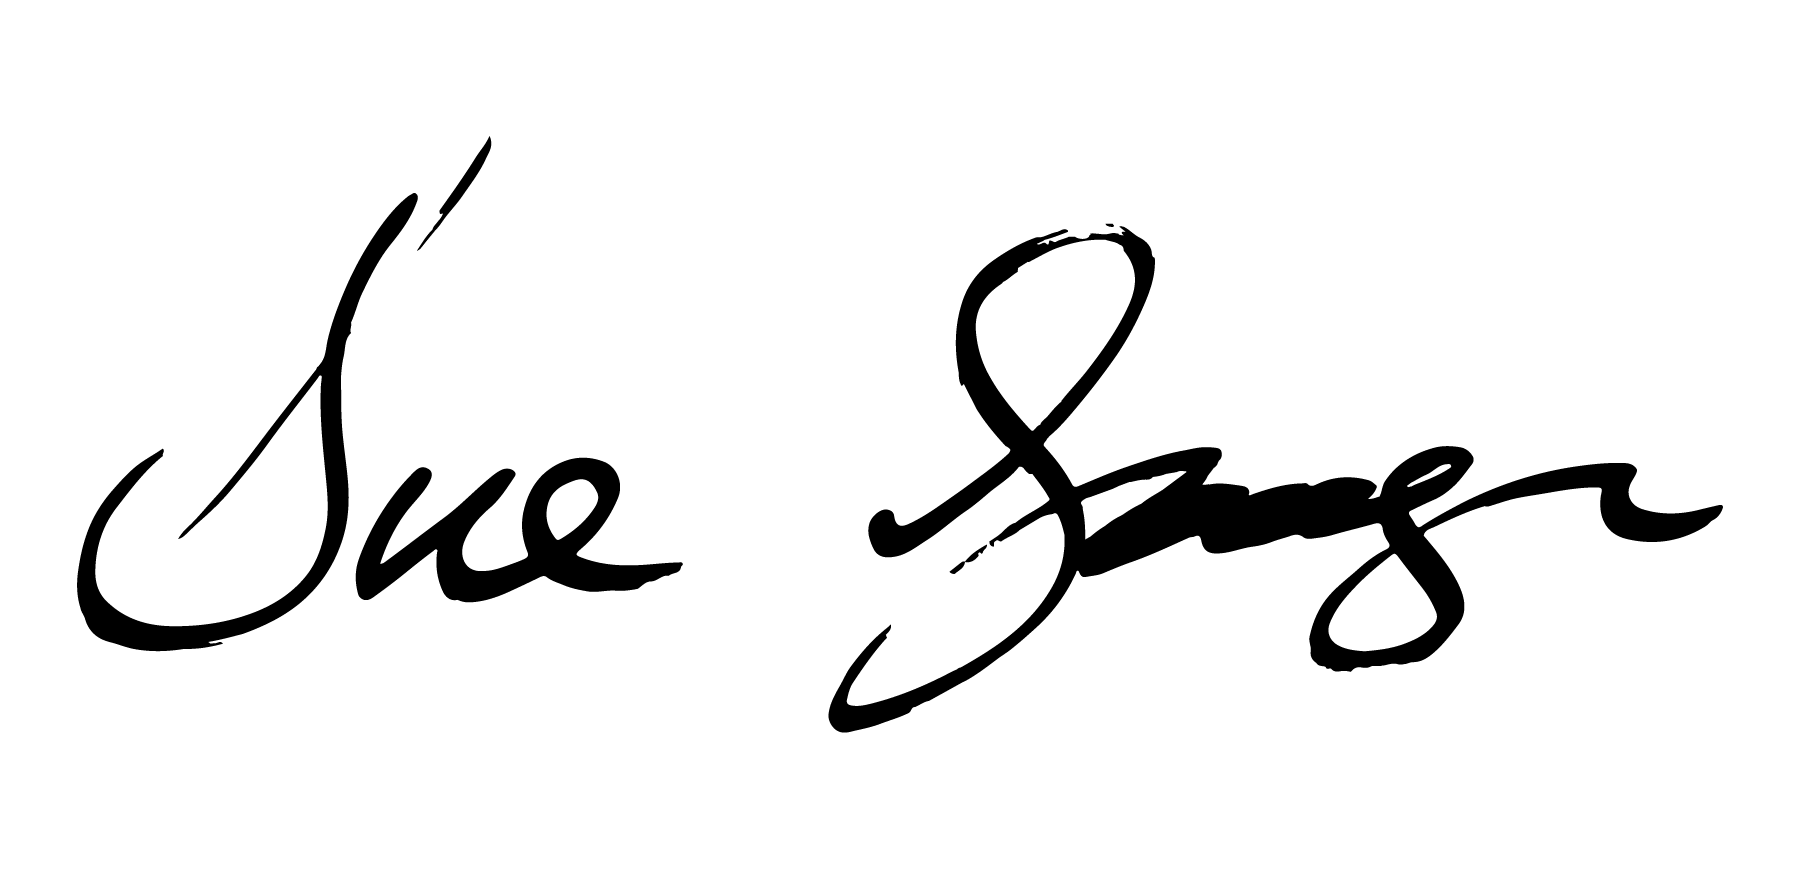 Sue_Googe_Signatures-01.png